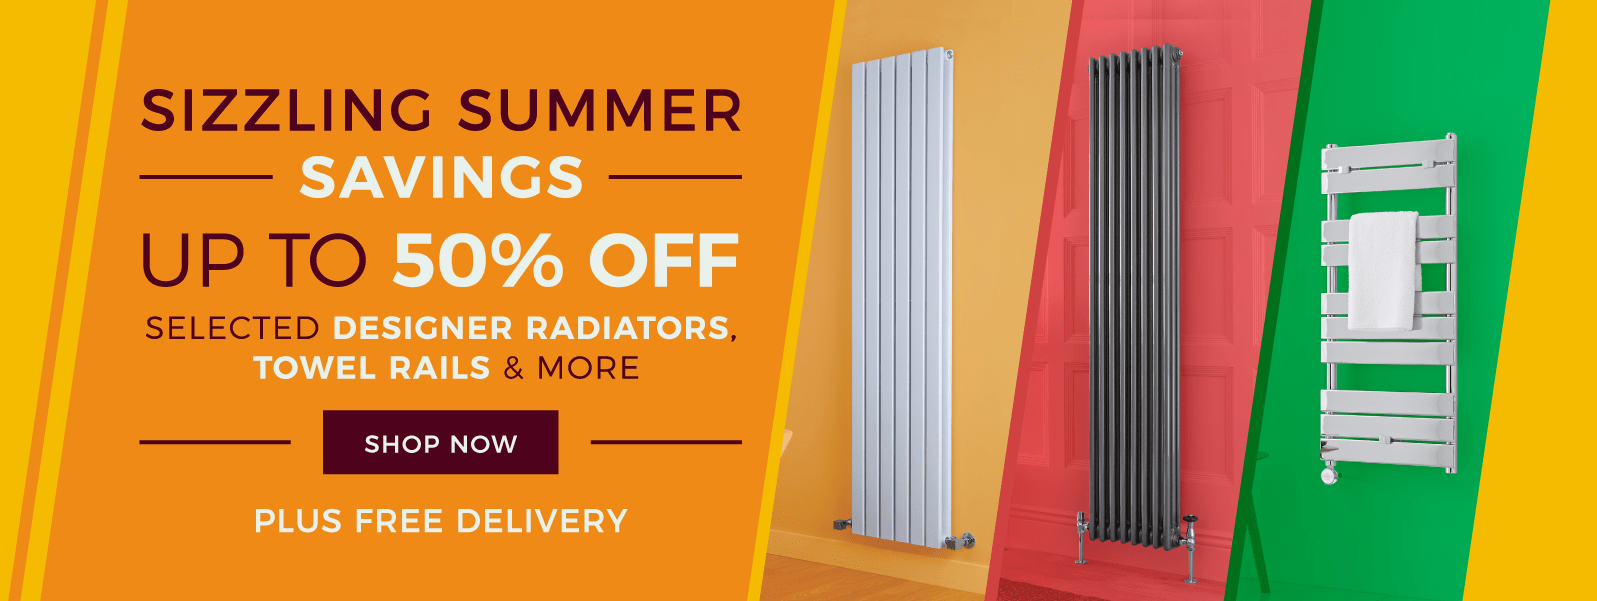 Up To 50% Off Selected Designer Radiators, Towel Rails & More - Plus Free Delivery